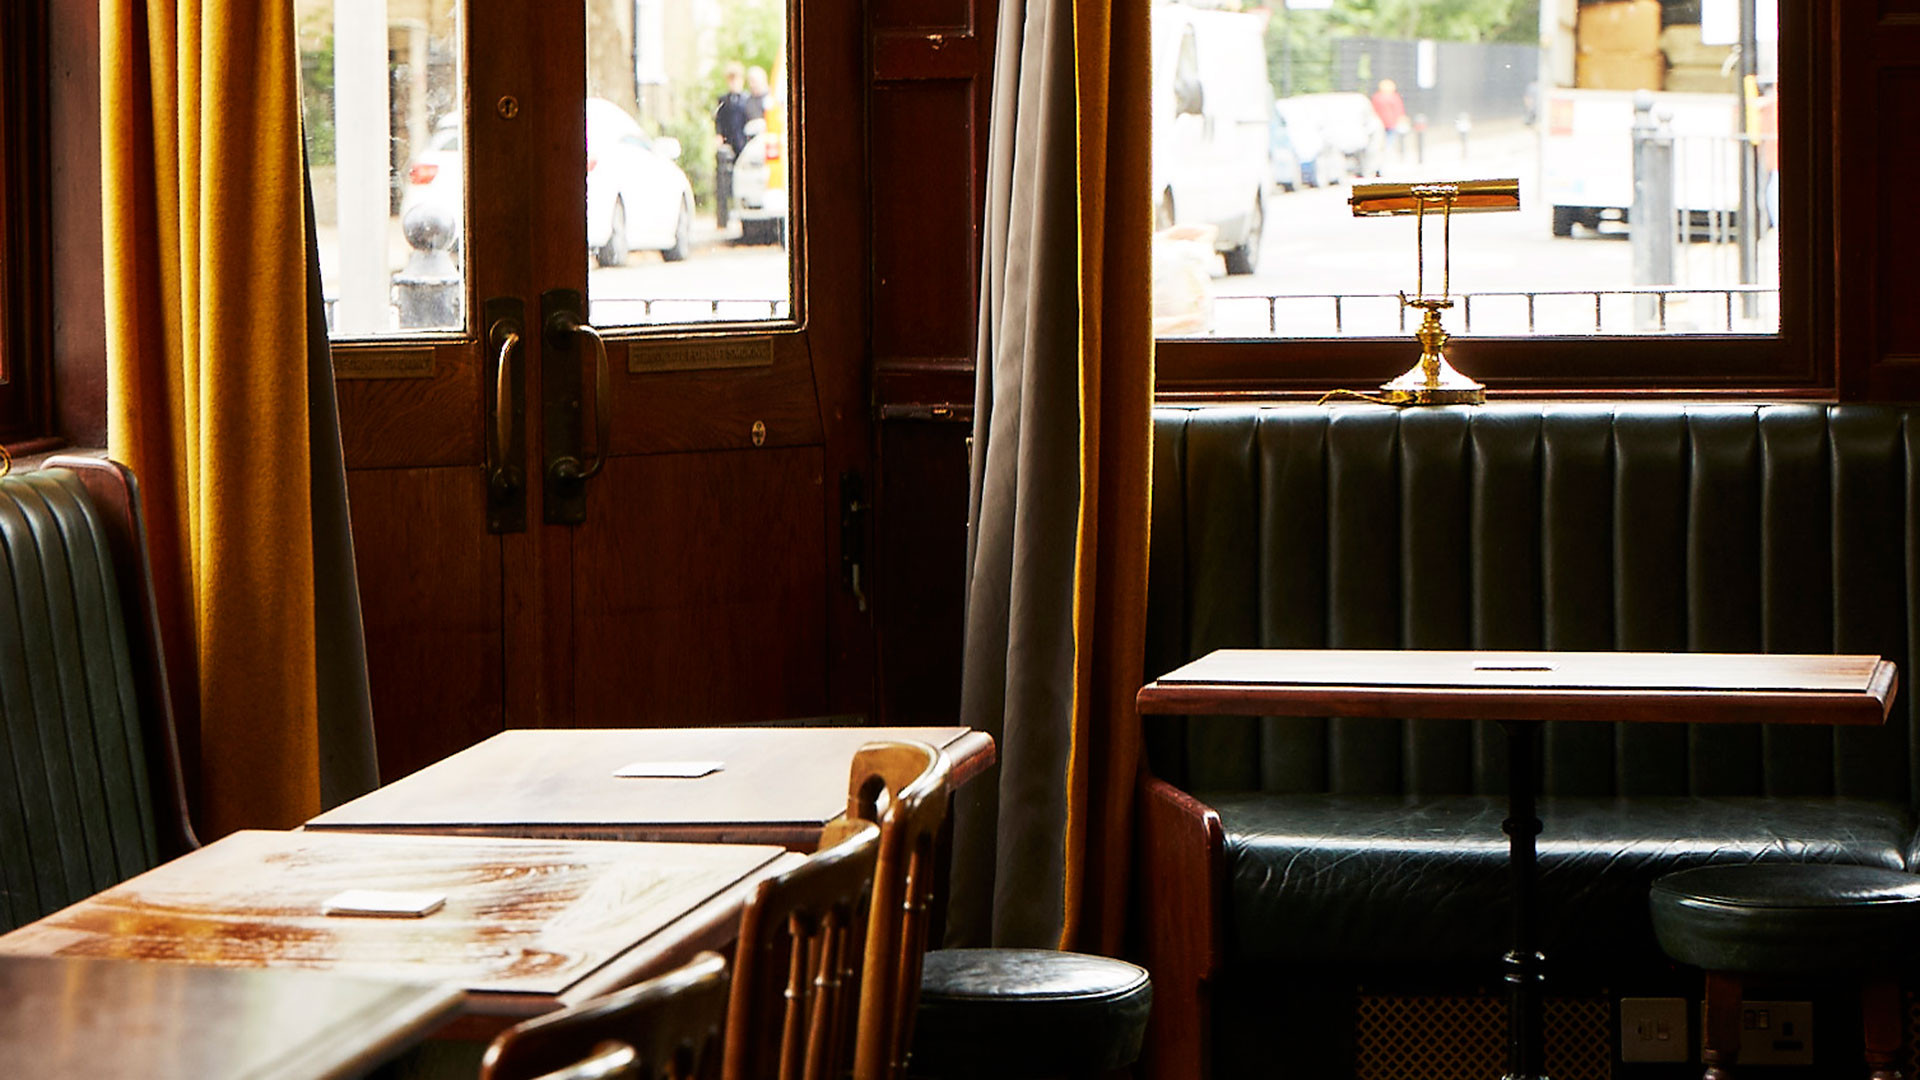 London's best nose-to-tail restaurants – Marksman Public House